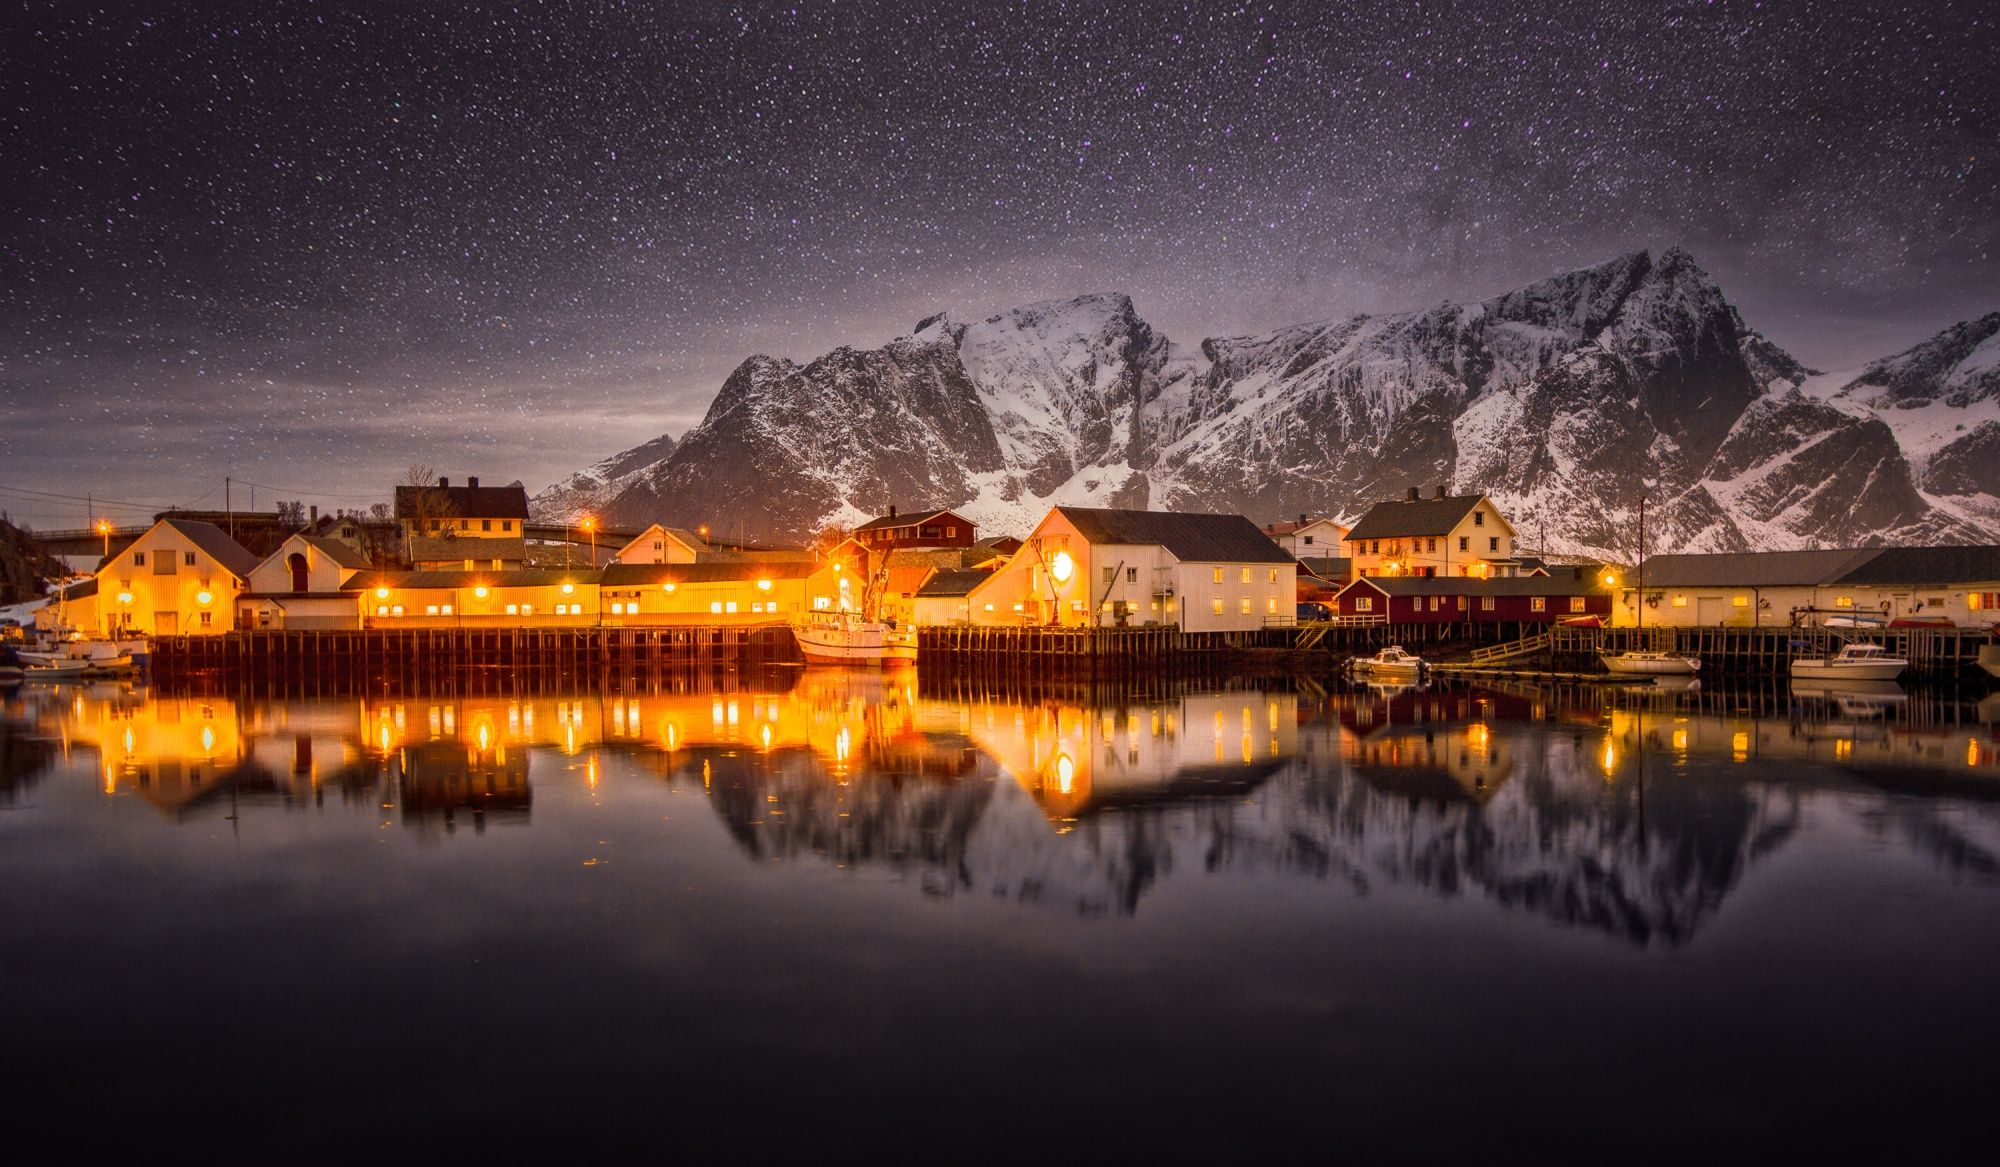 If ever an image screamed of tranquility, this is it! The calmness of the water in the foreground and the blanket of stars in the background frame this fishing village nicely. You can almost feel the cold, crisp air!